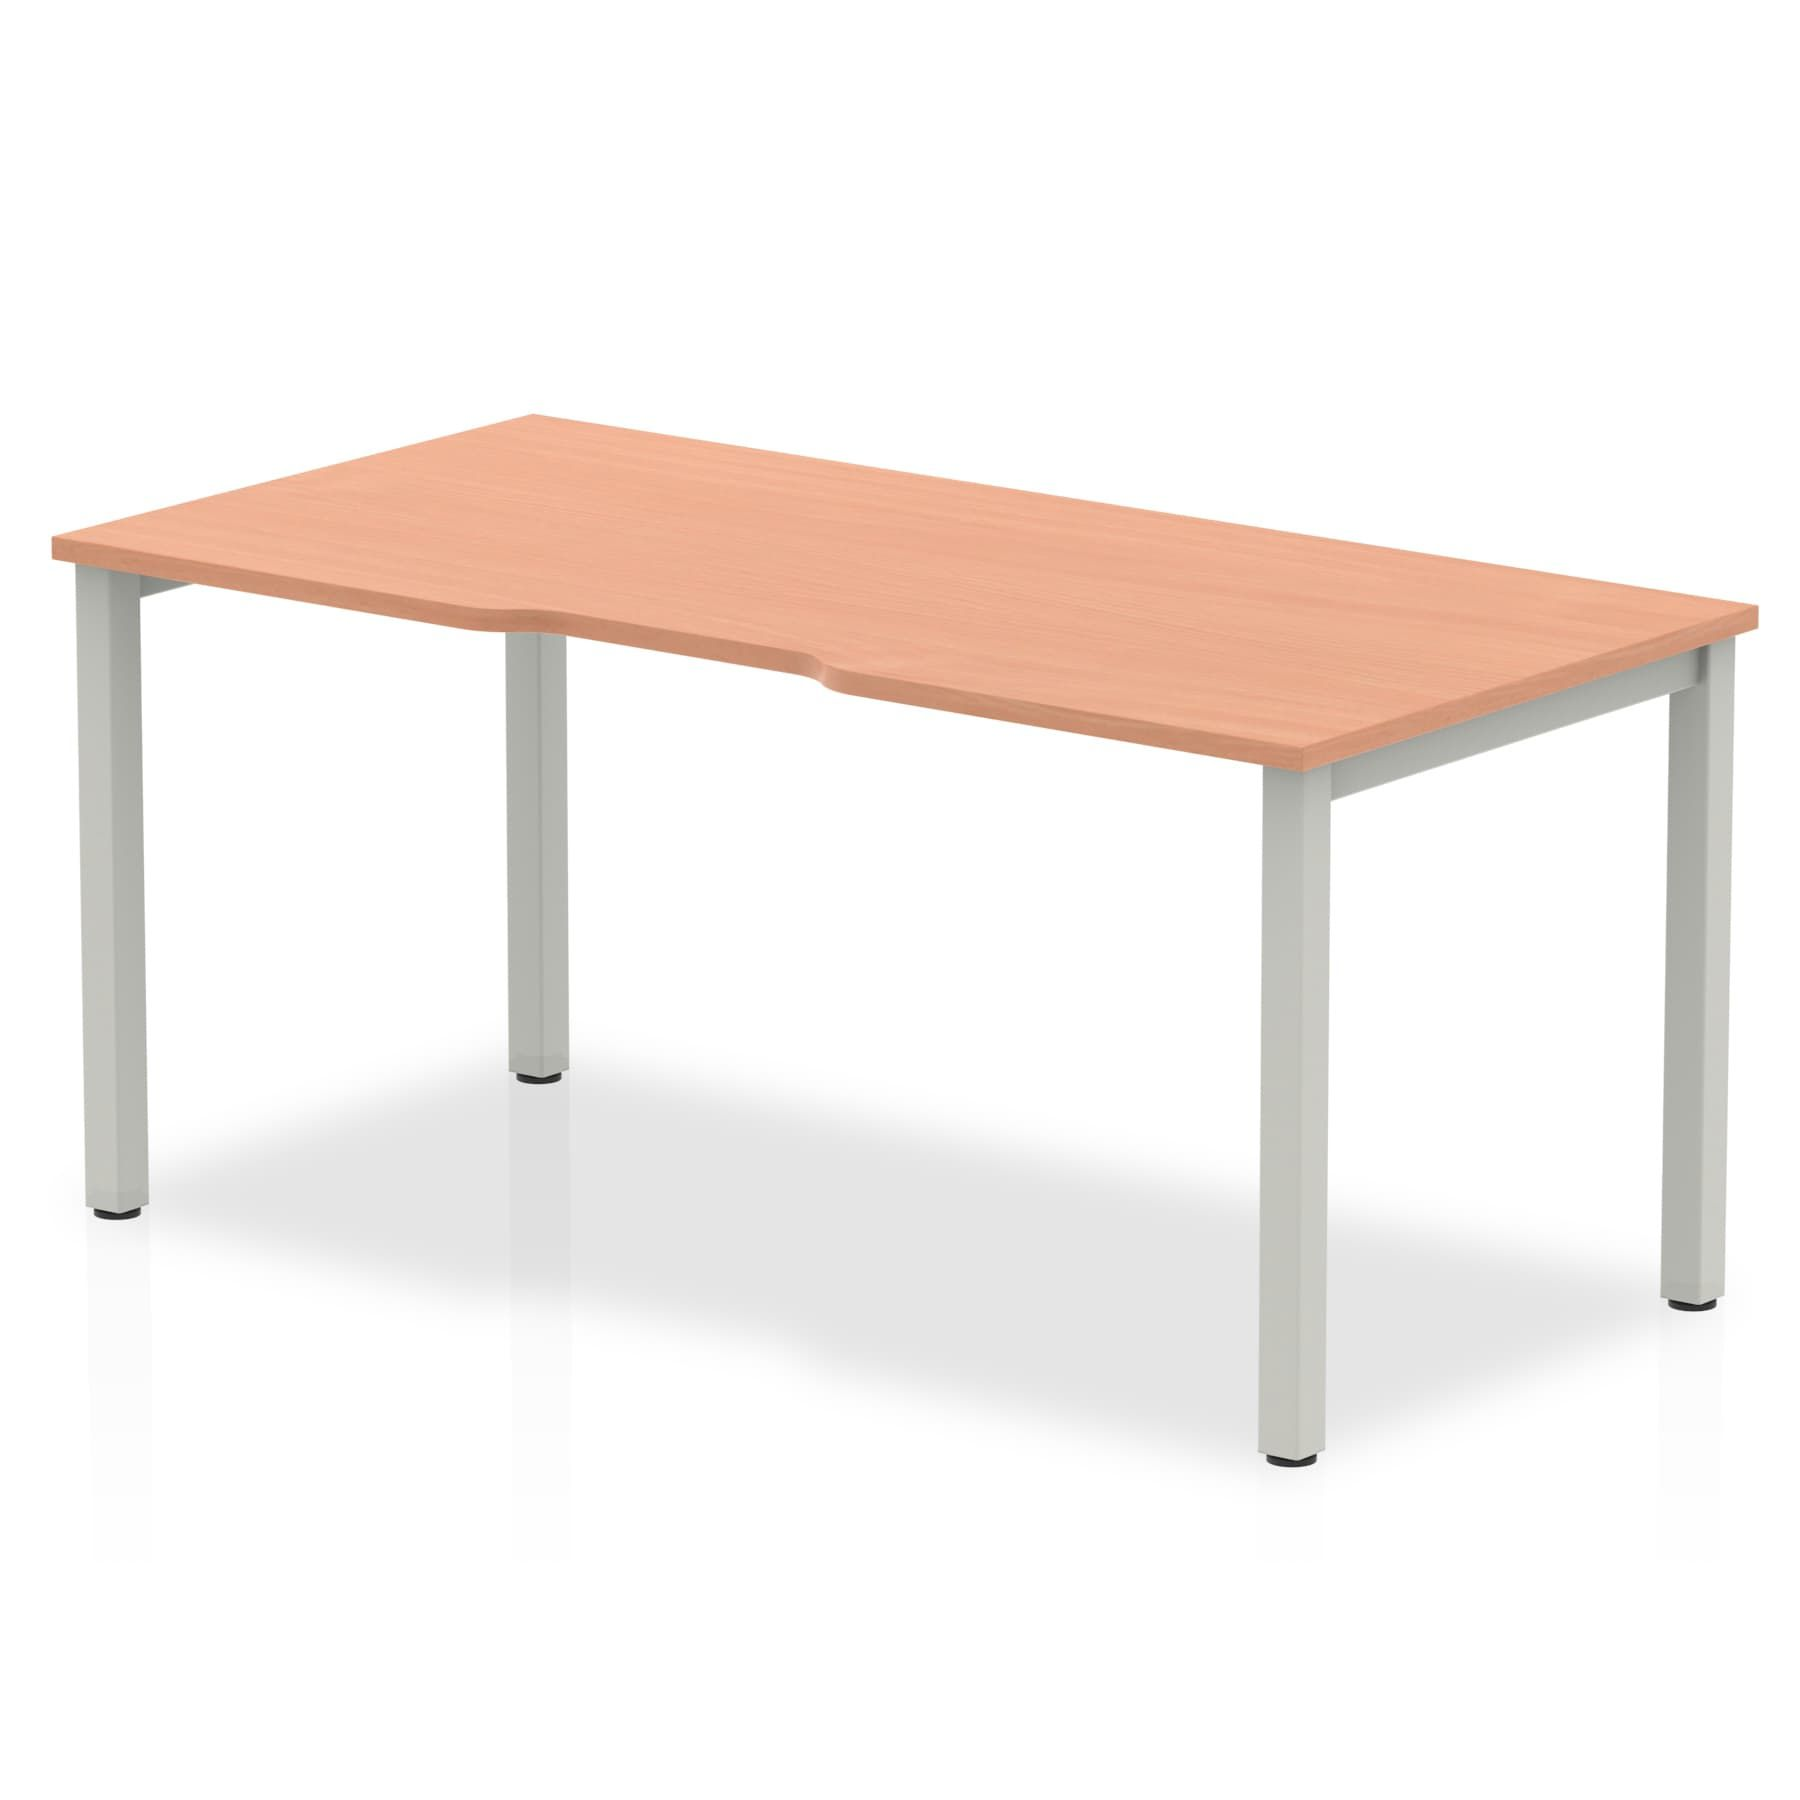 Single Silver Frame Bench Desk 1400